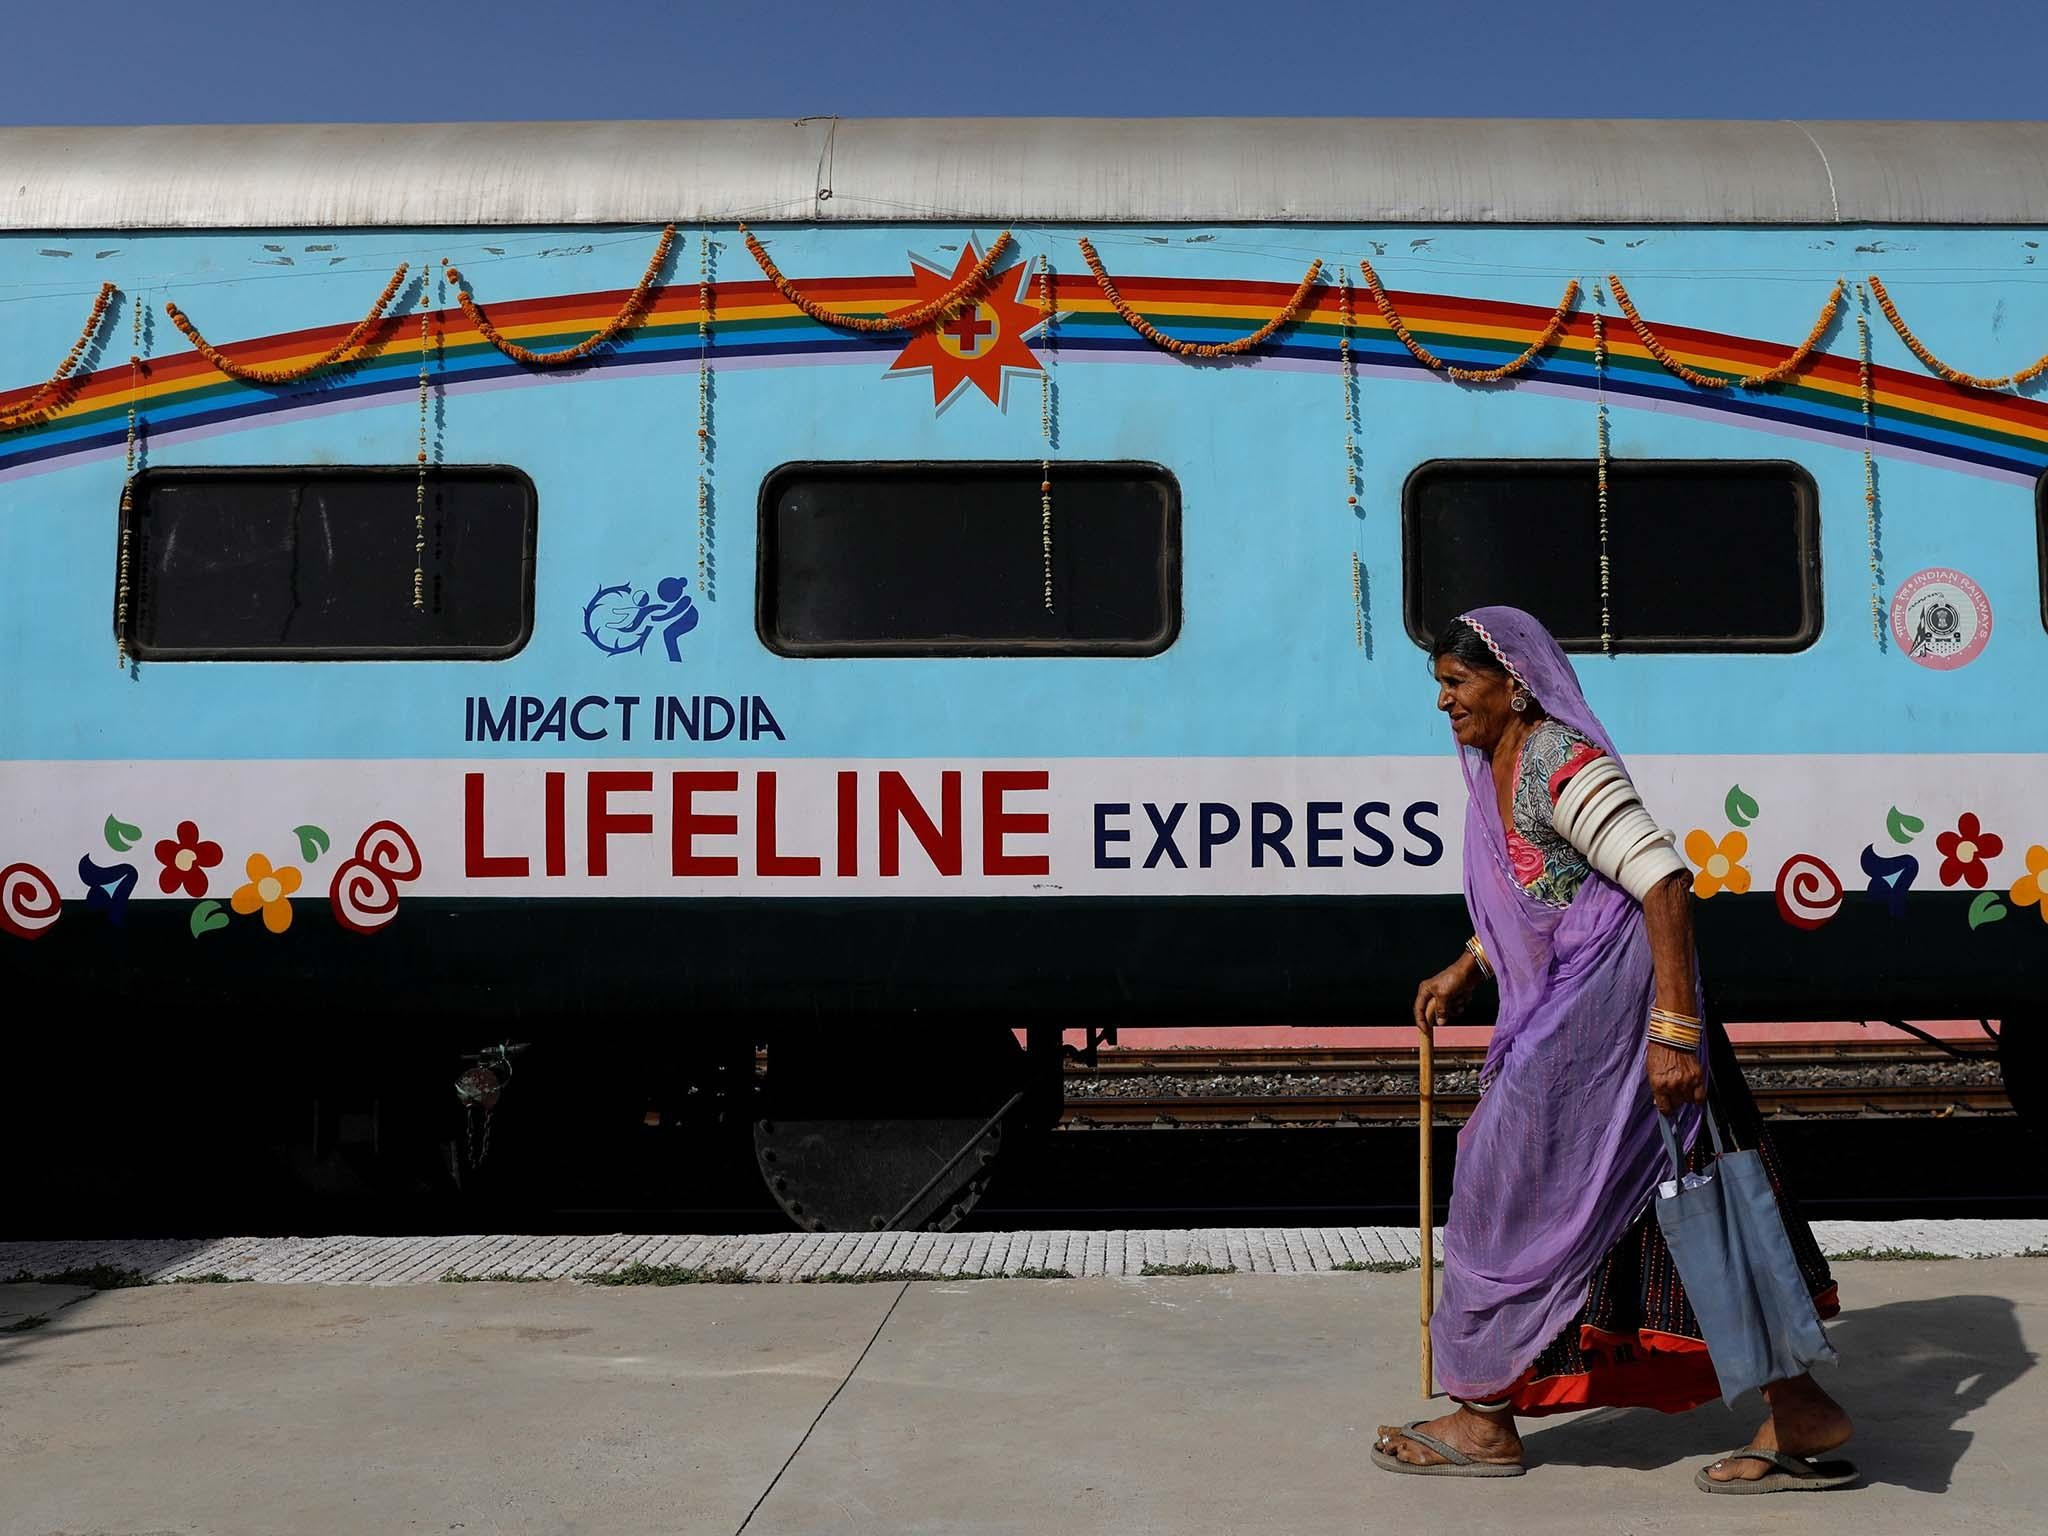 Hospital on wheels brings hope to Indian villages | The Independentindependent_brand_ident_LOGOUntitled